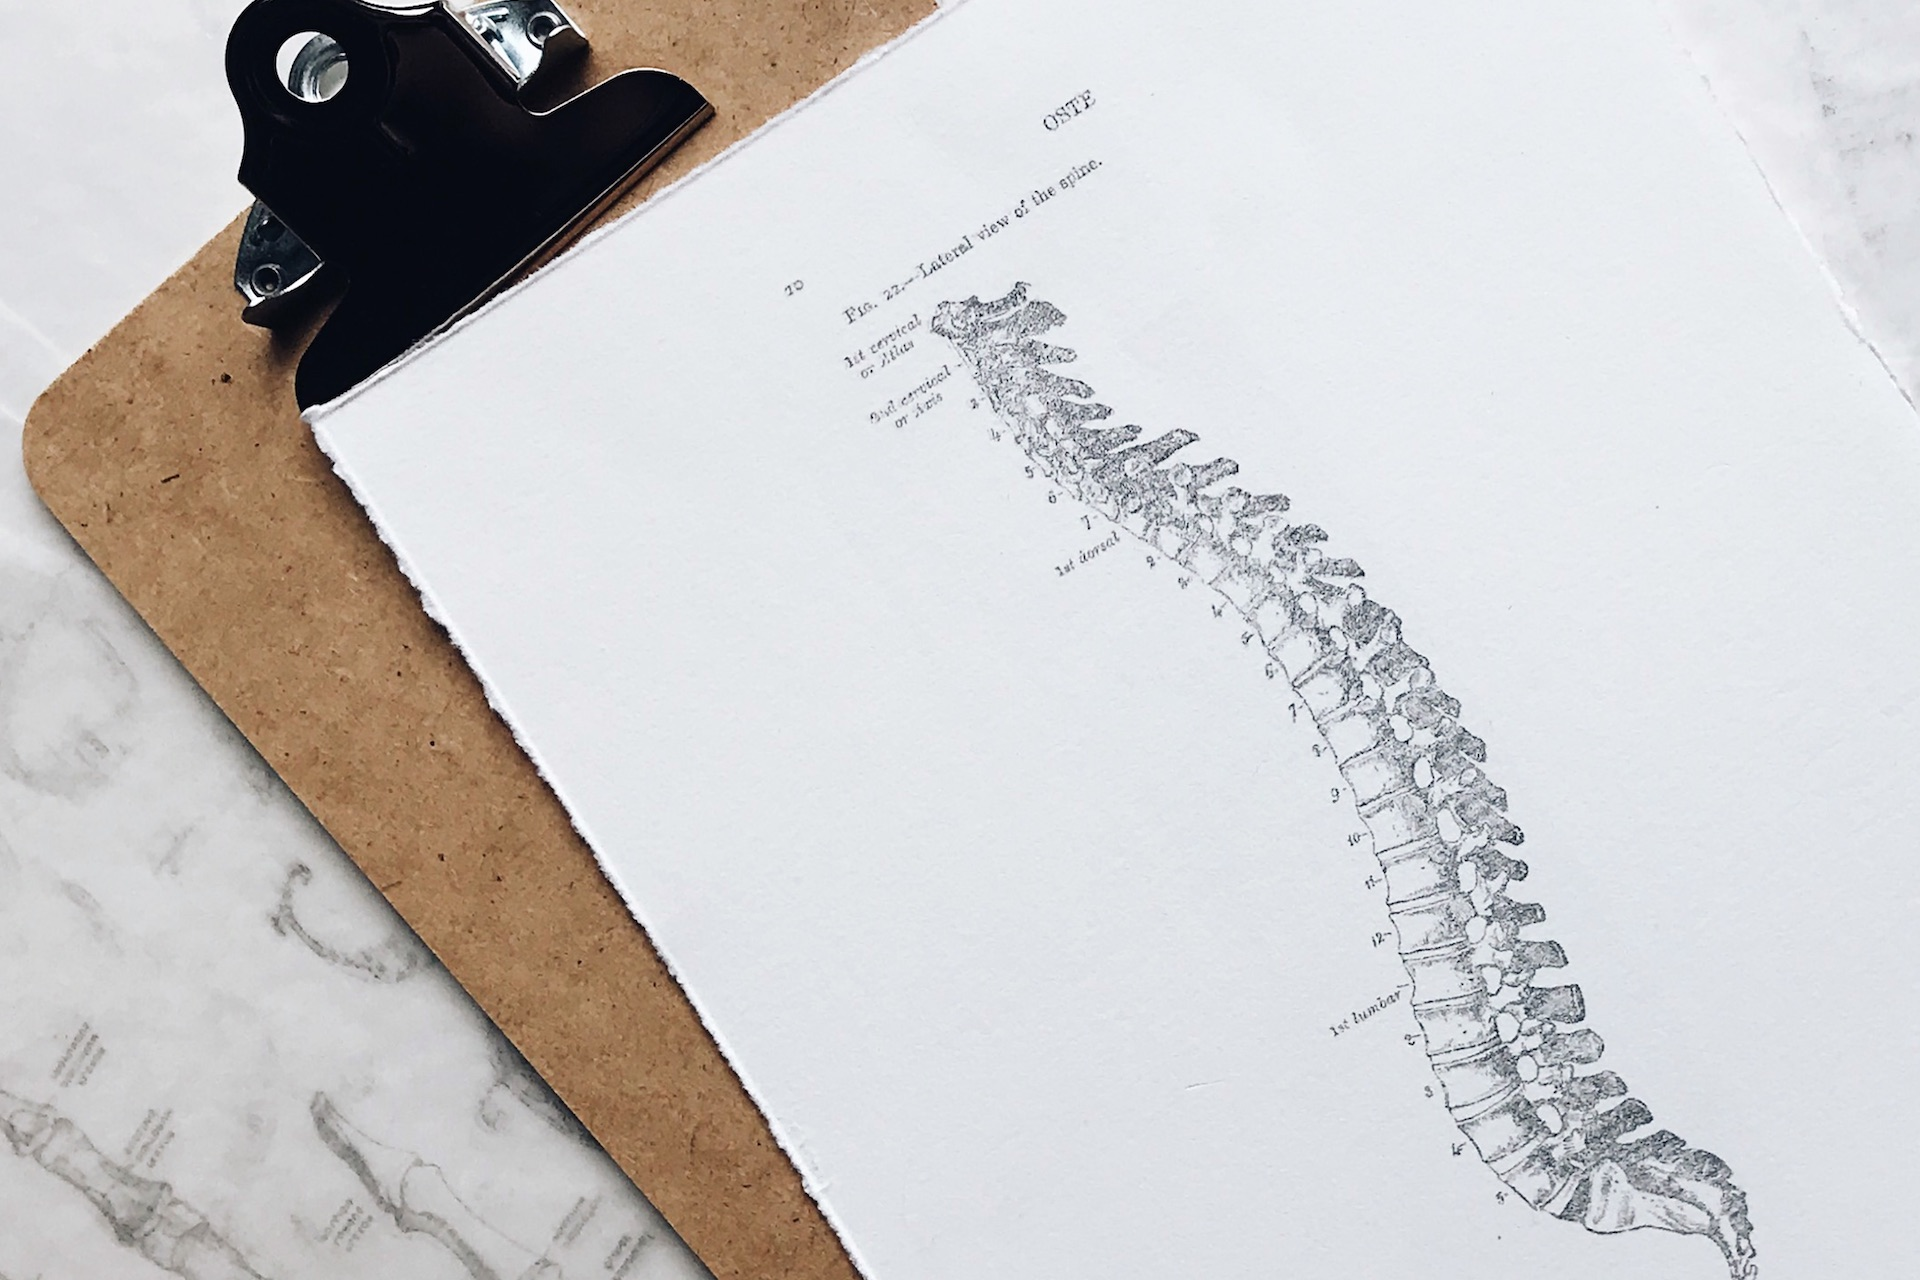 Sketch of a spine with scoliosis